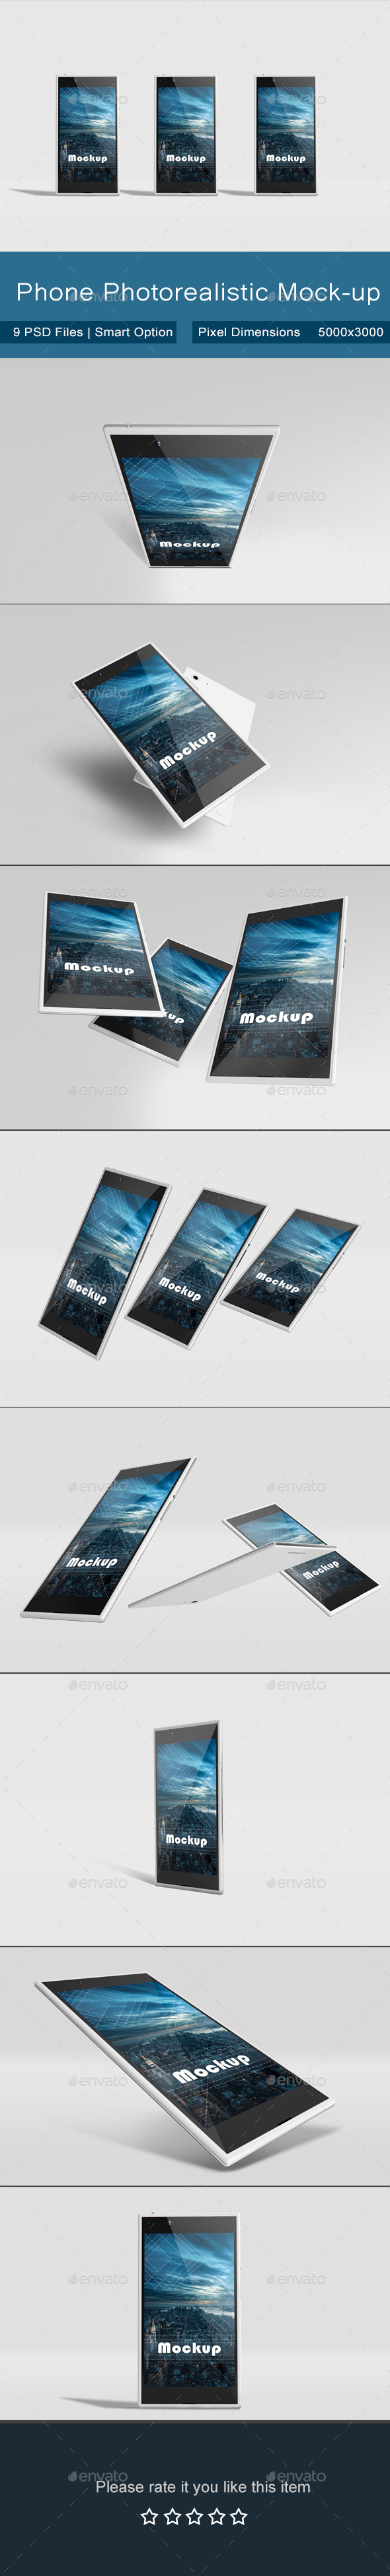 Phone Photorealistic Mock-up - Mobile Displays